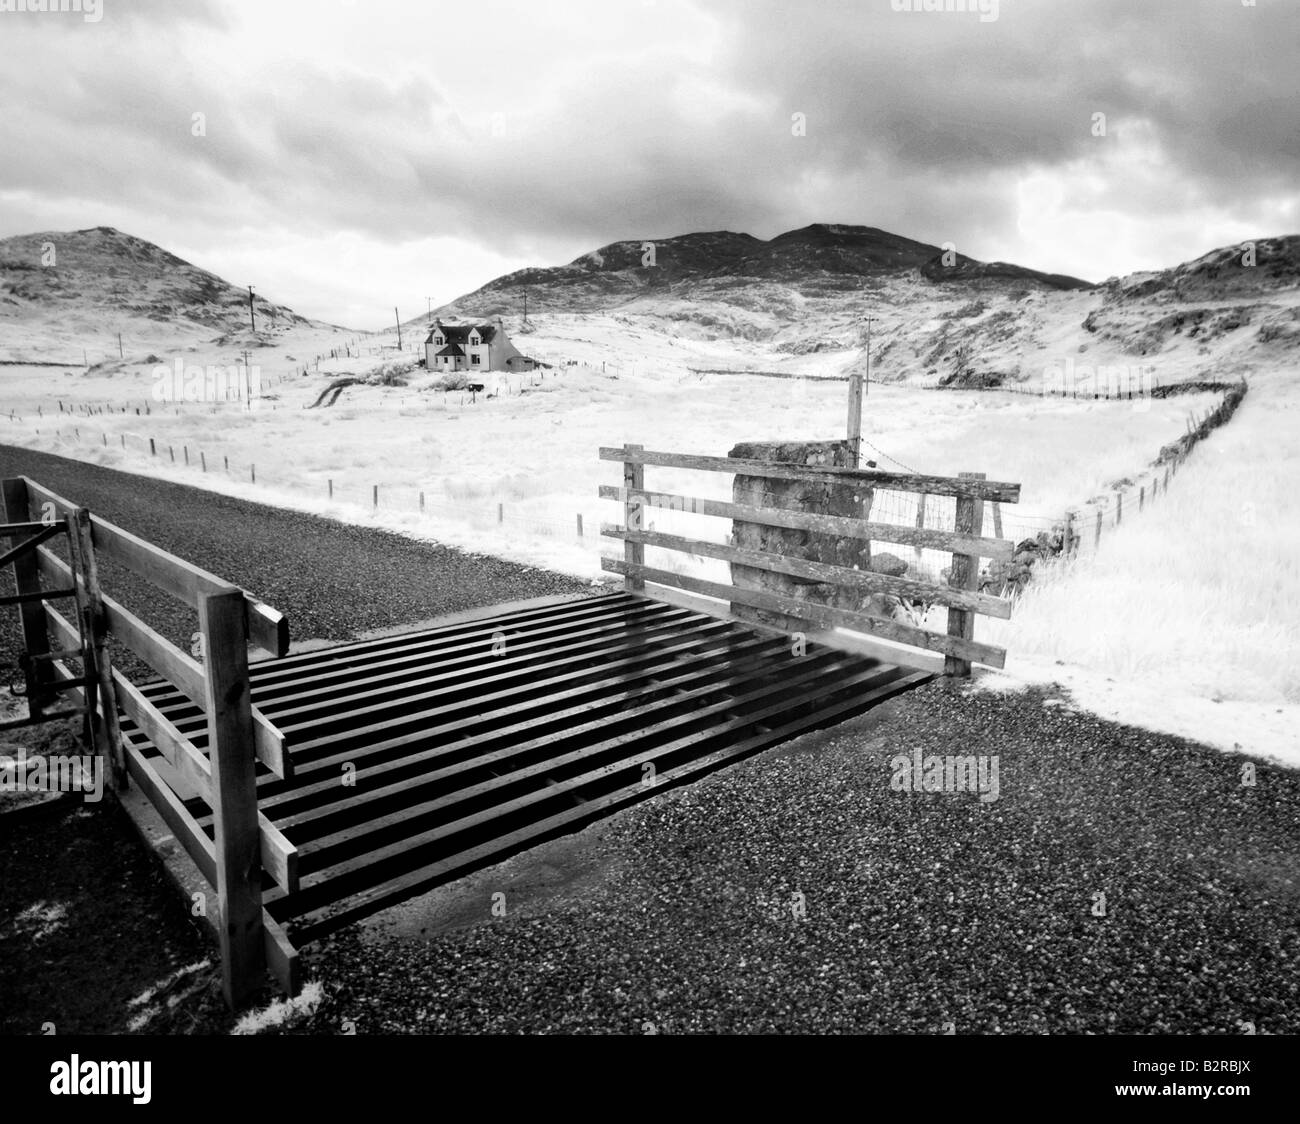 Infrared image of a cattle grid on the Isle of Harris, Hebrides, Scotland, UK - Stock Image